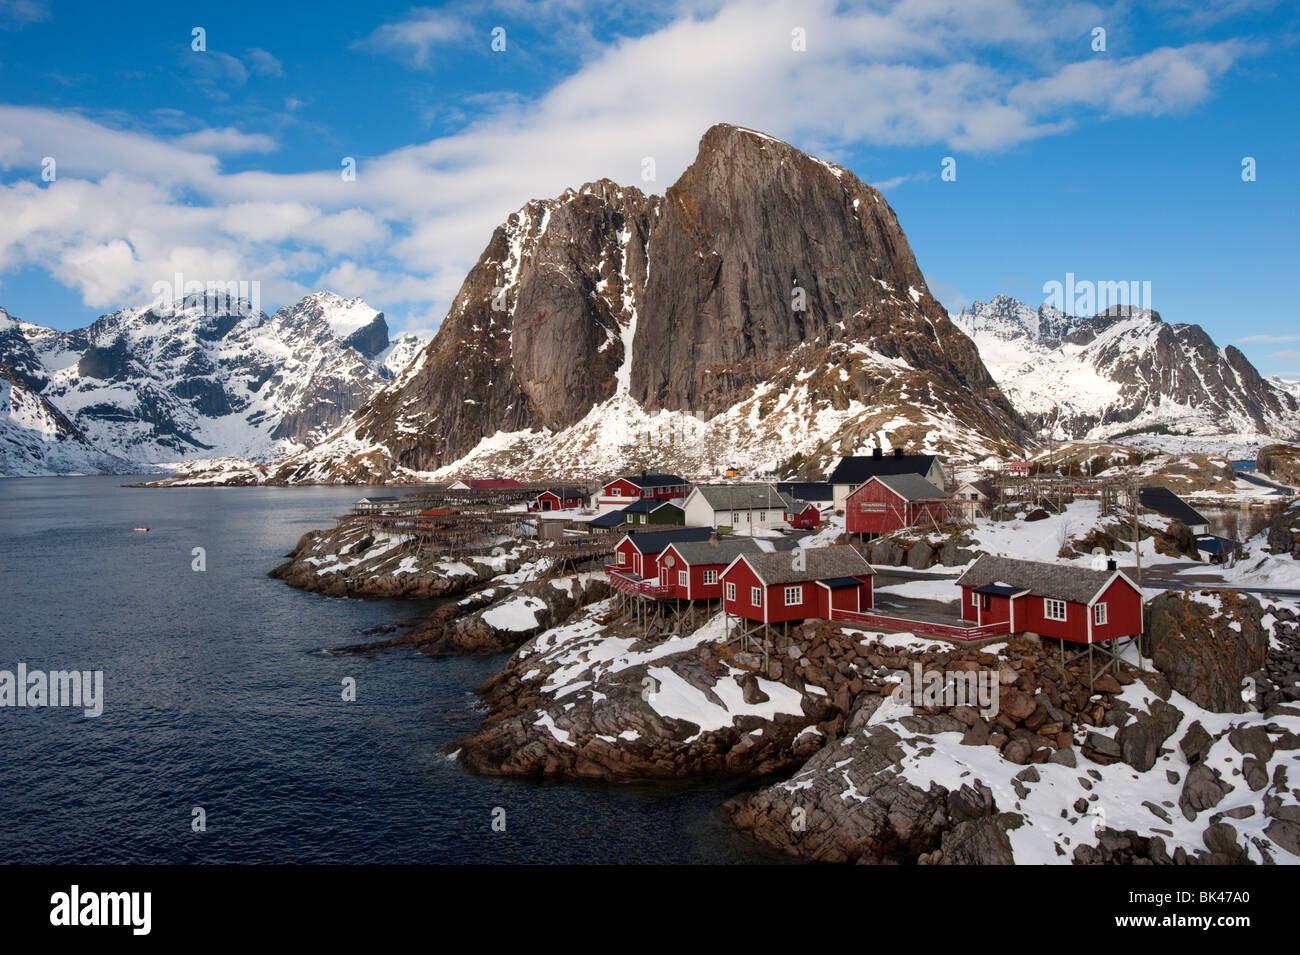 Traditional red wooden Rorbu fishermen`s huts in village of Hamnoy on Moskenesoya Island in Lofoten Islands in Norway - Stock Image